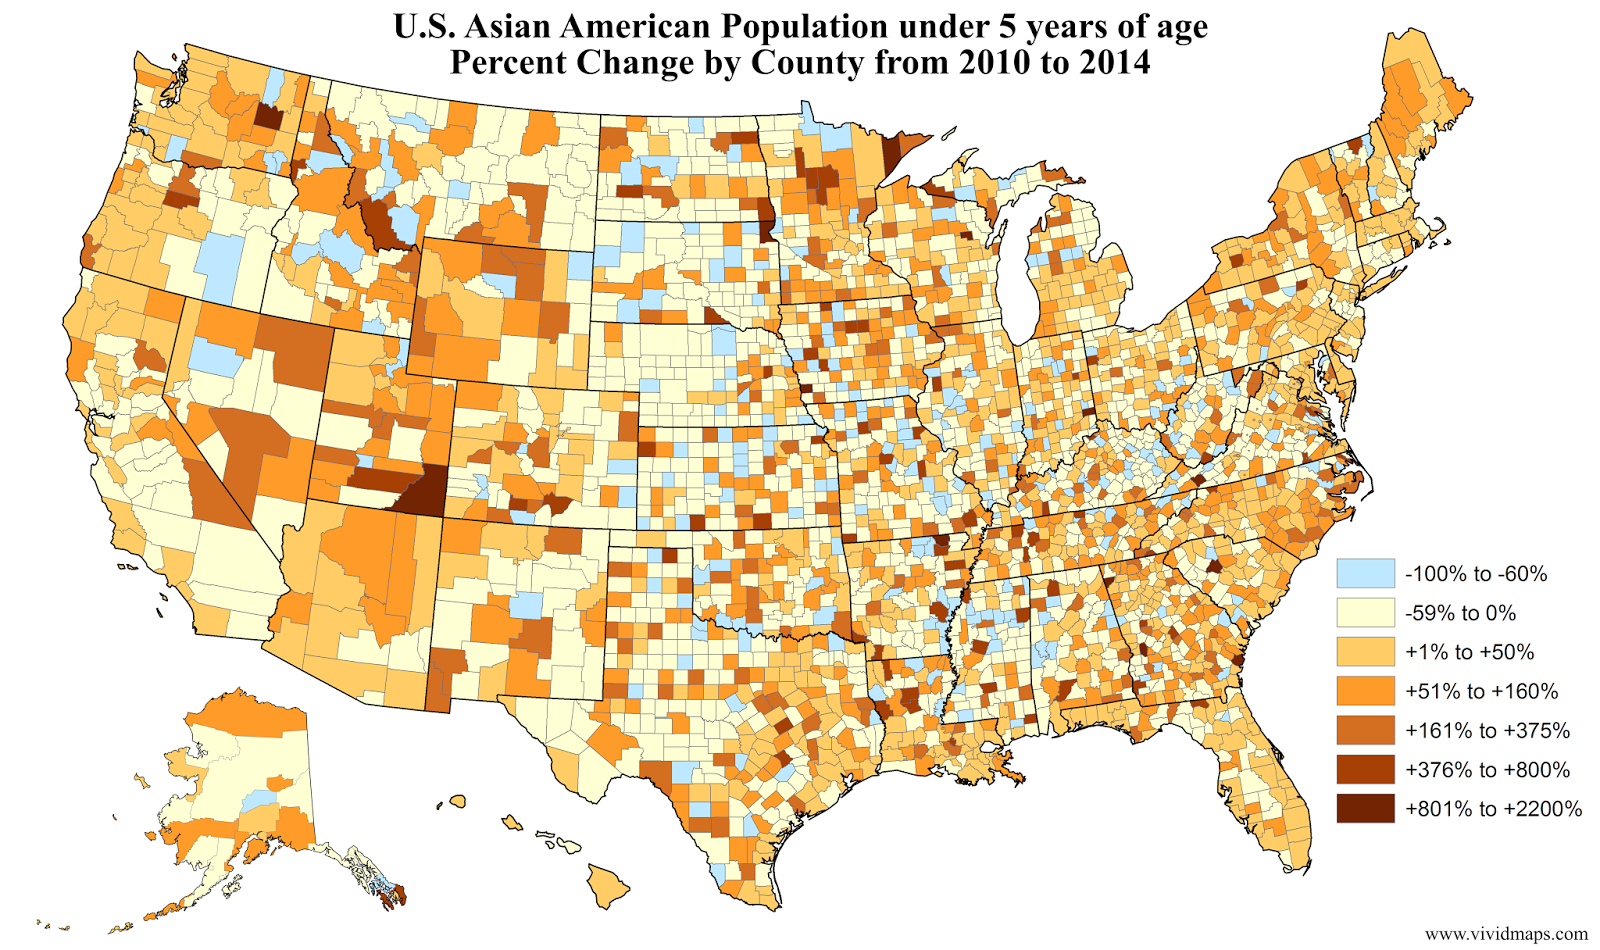 U.S. Asian American Population under 5 years of age Percent Change by County (2010 - 2014)